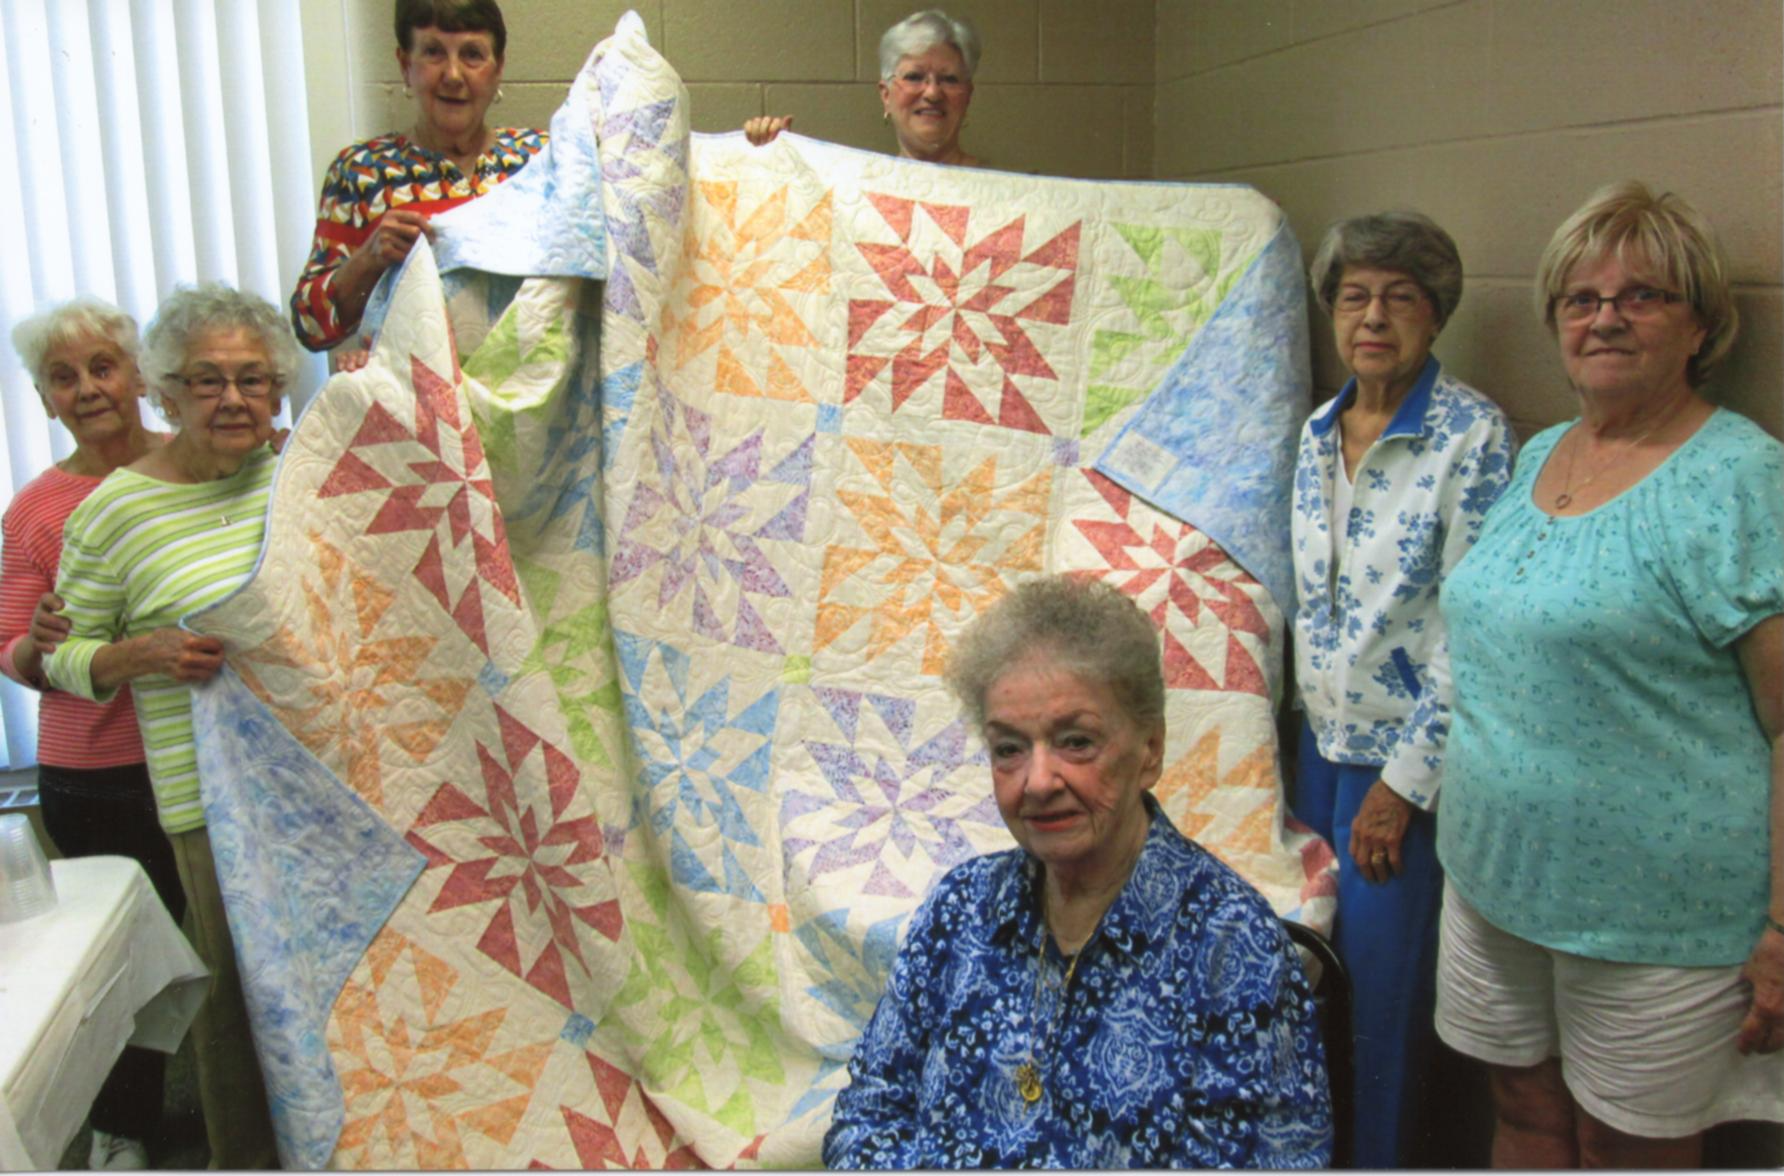 Clockwise from top left: Betty P., Carol N., May R., Audrey M., Rita P., Helen C., and Betty L.